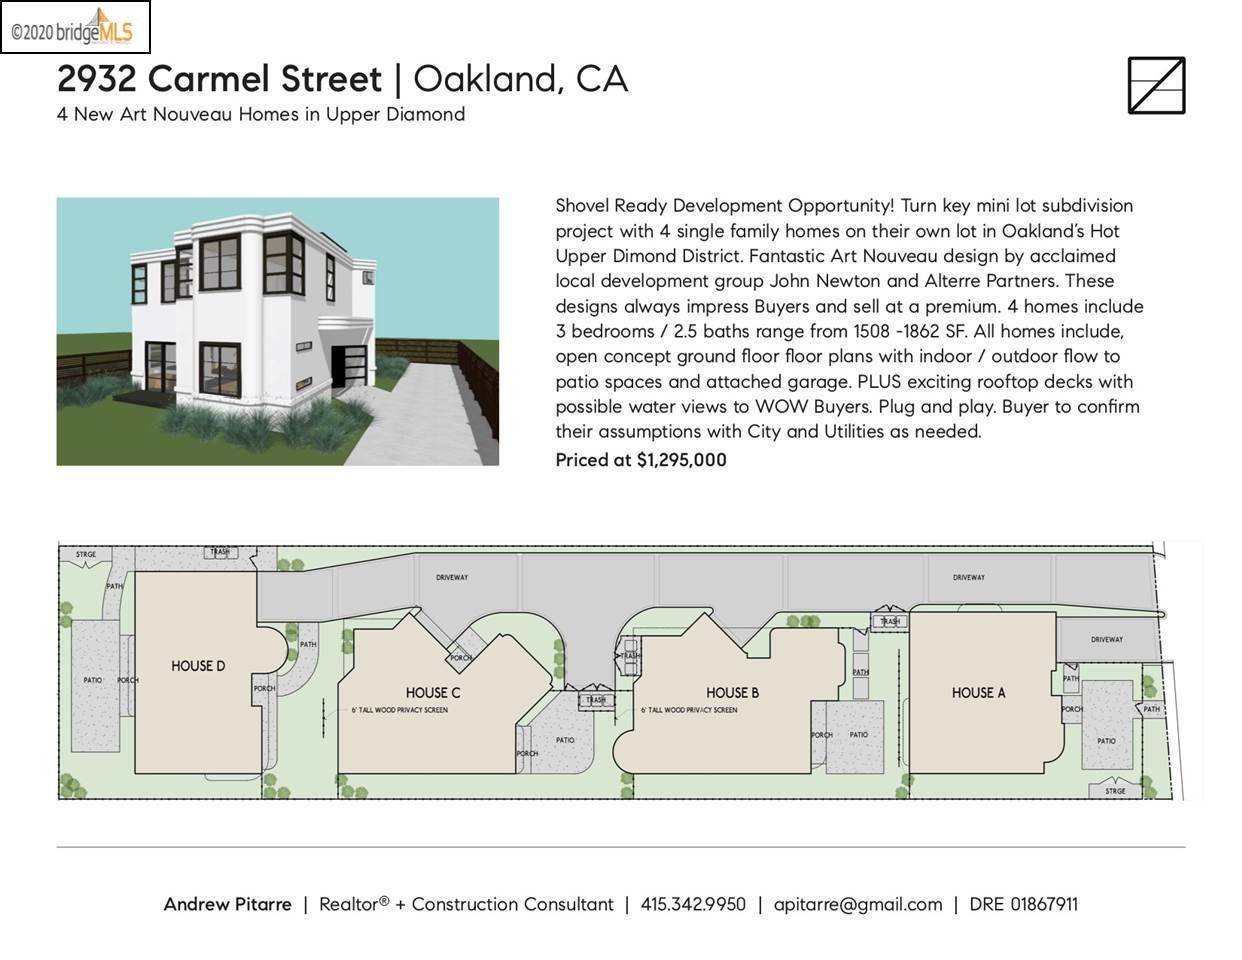 Property for Sale at 2932 Carmel Street Oakland, California 94602 United States